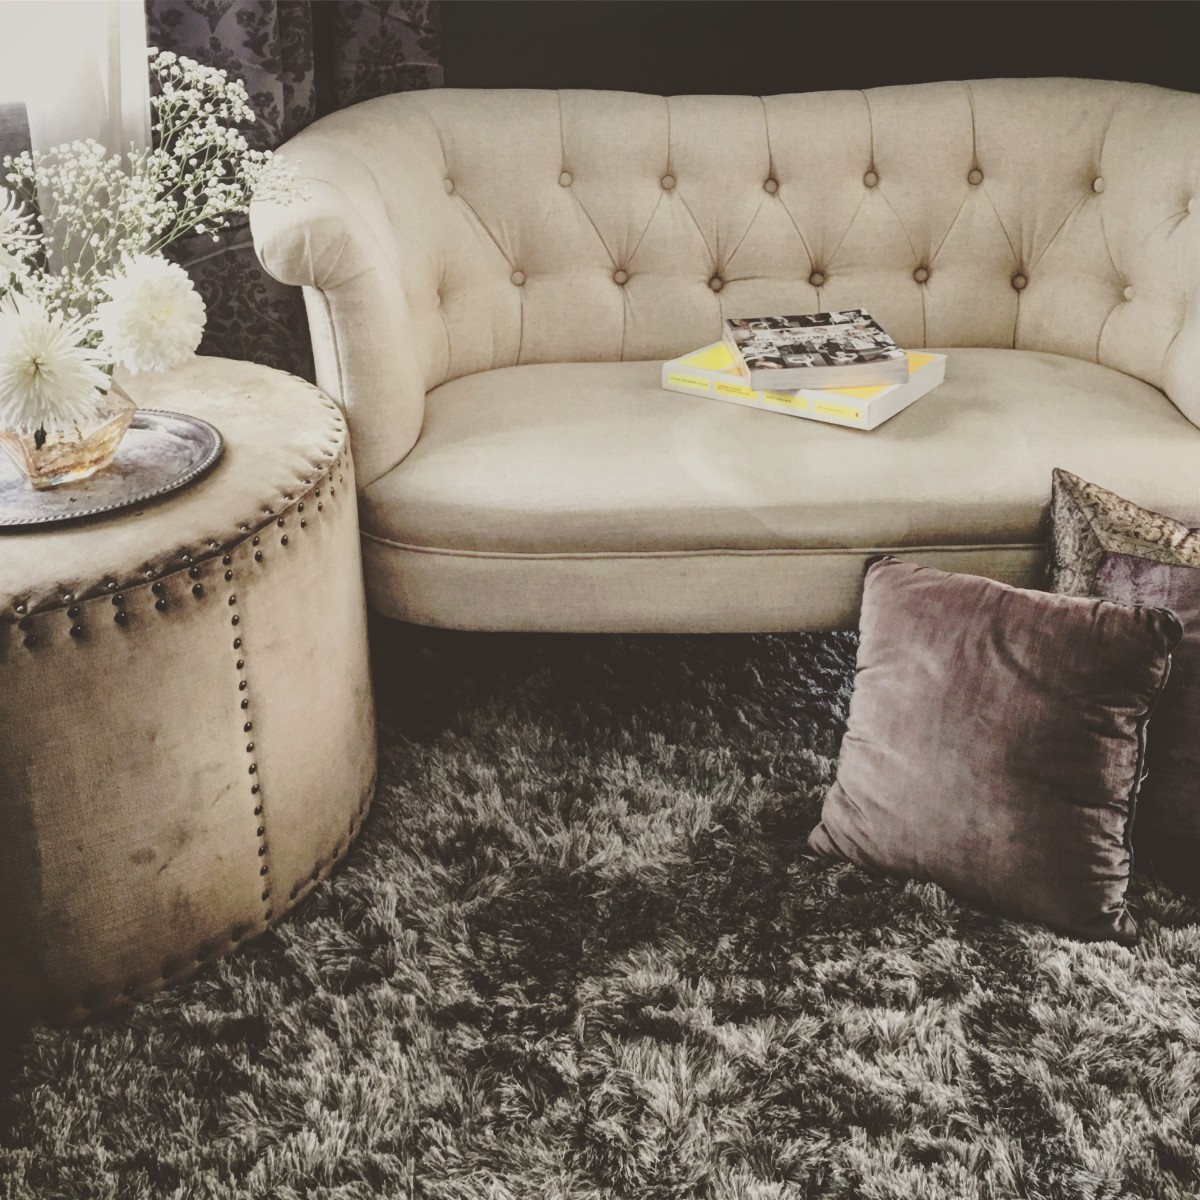 home trend furniture. Home Trend Hygge Glam.JPG Furniture P